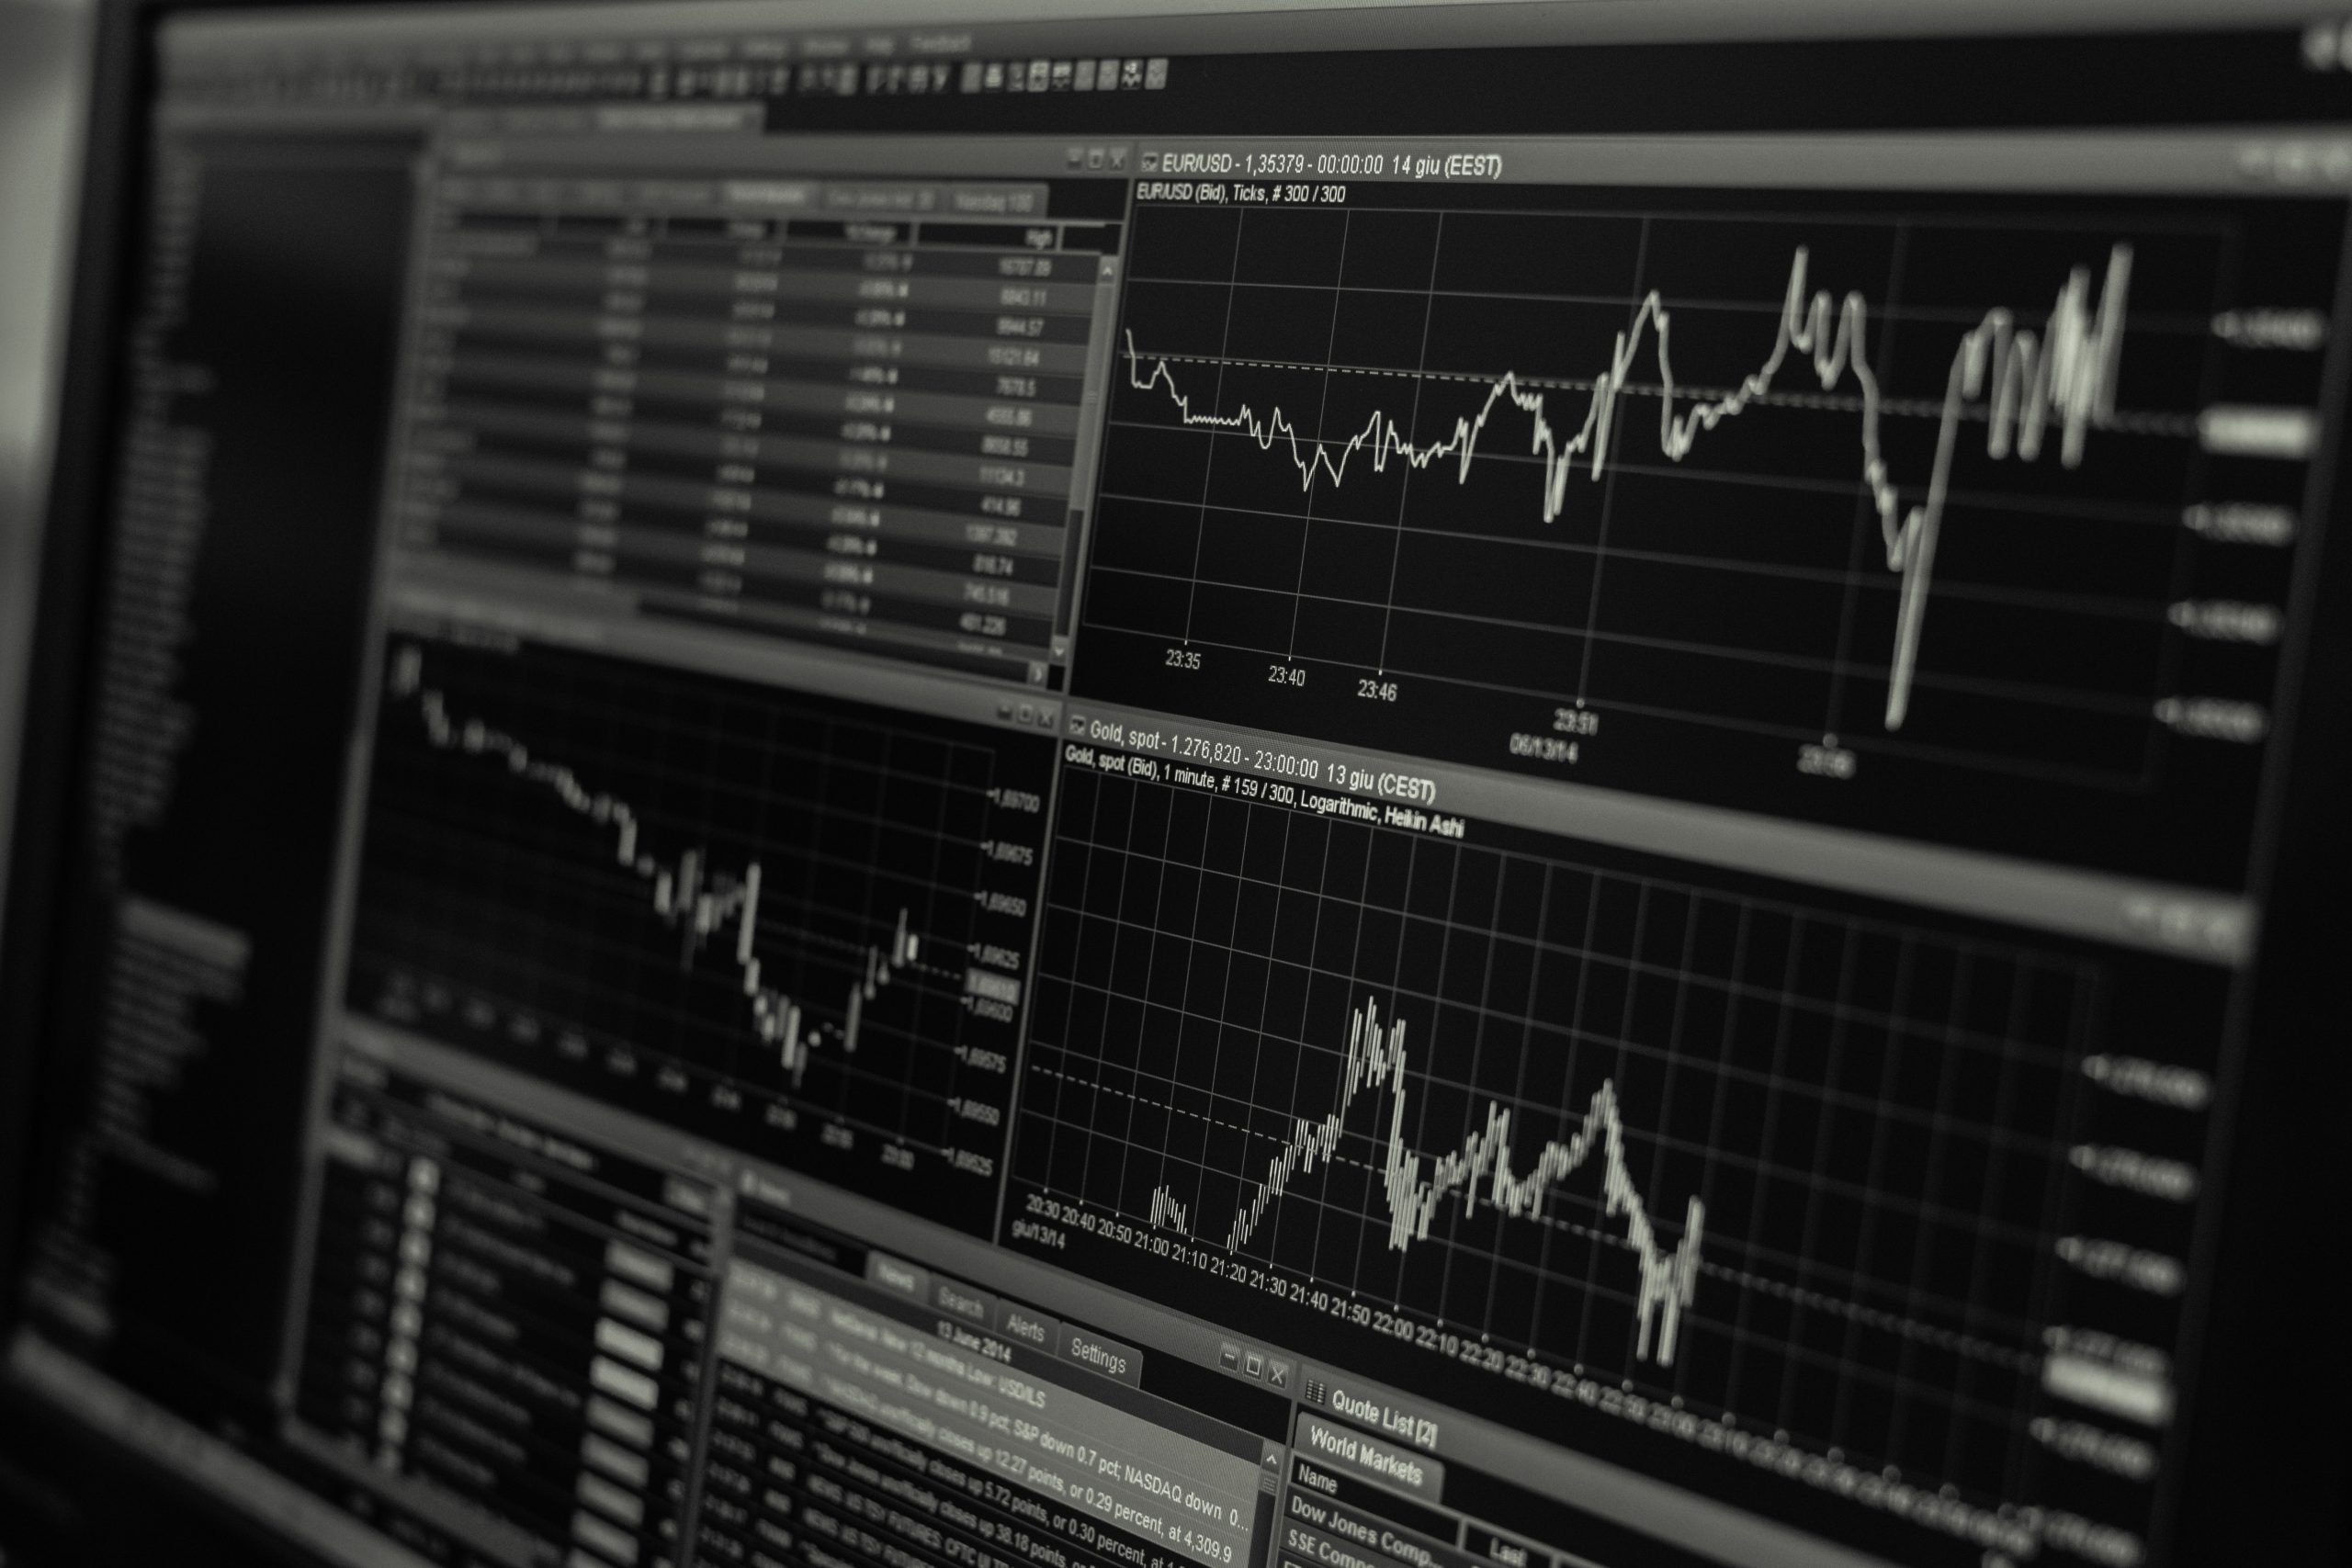 Different types of graphs showing financial data